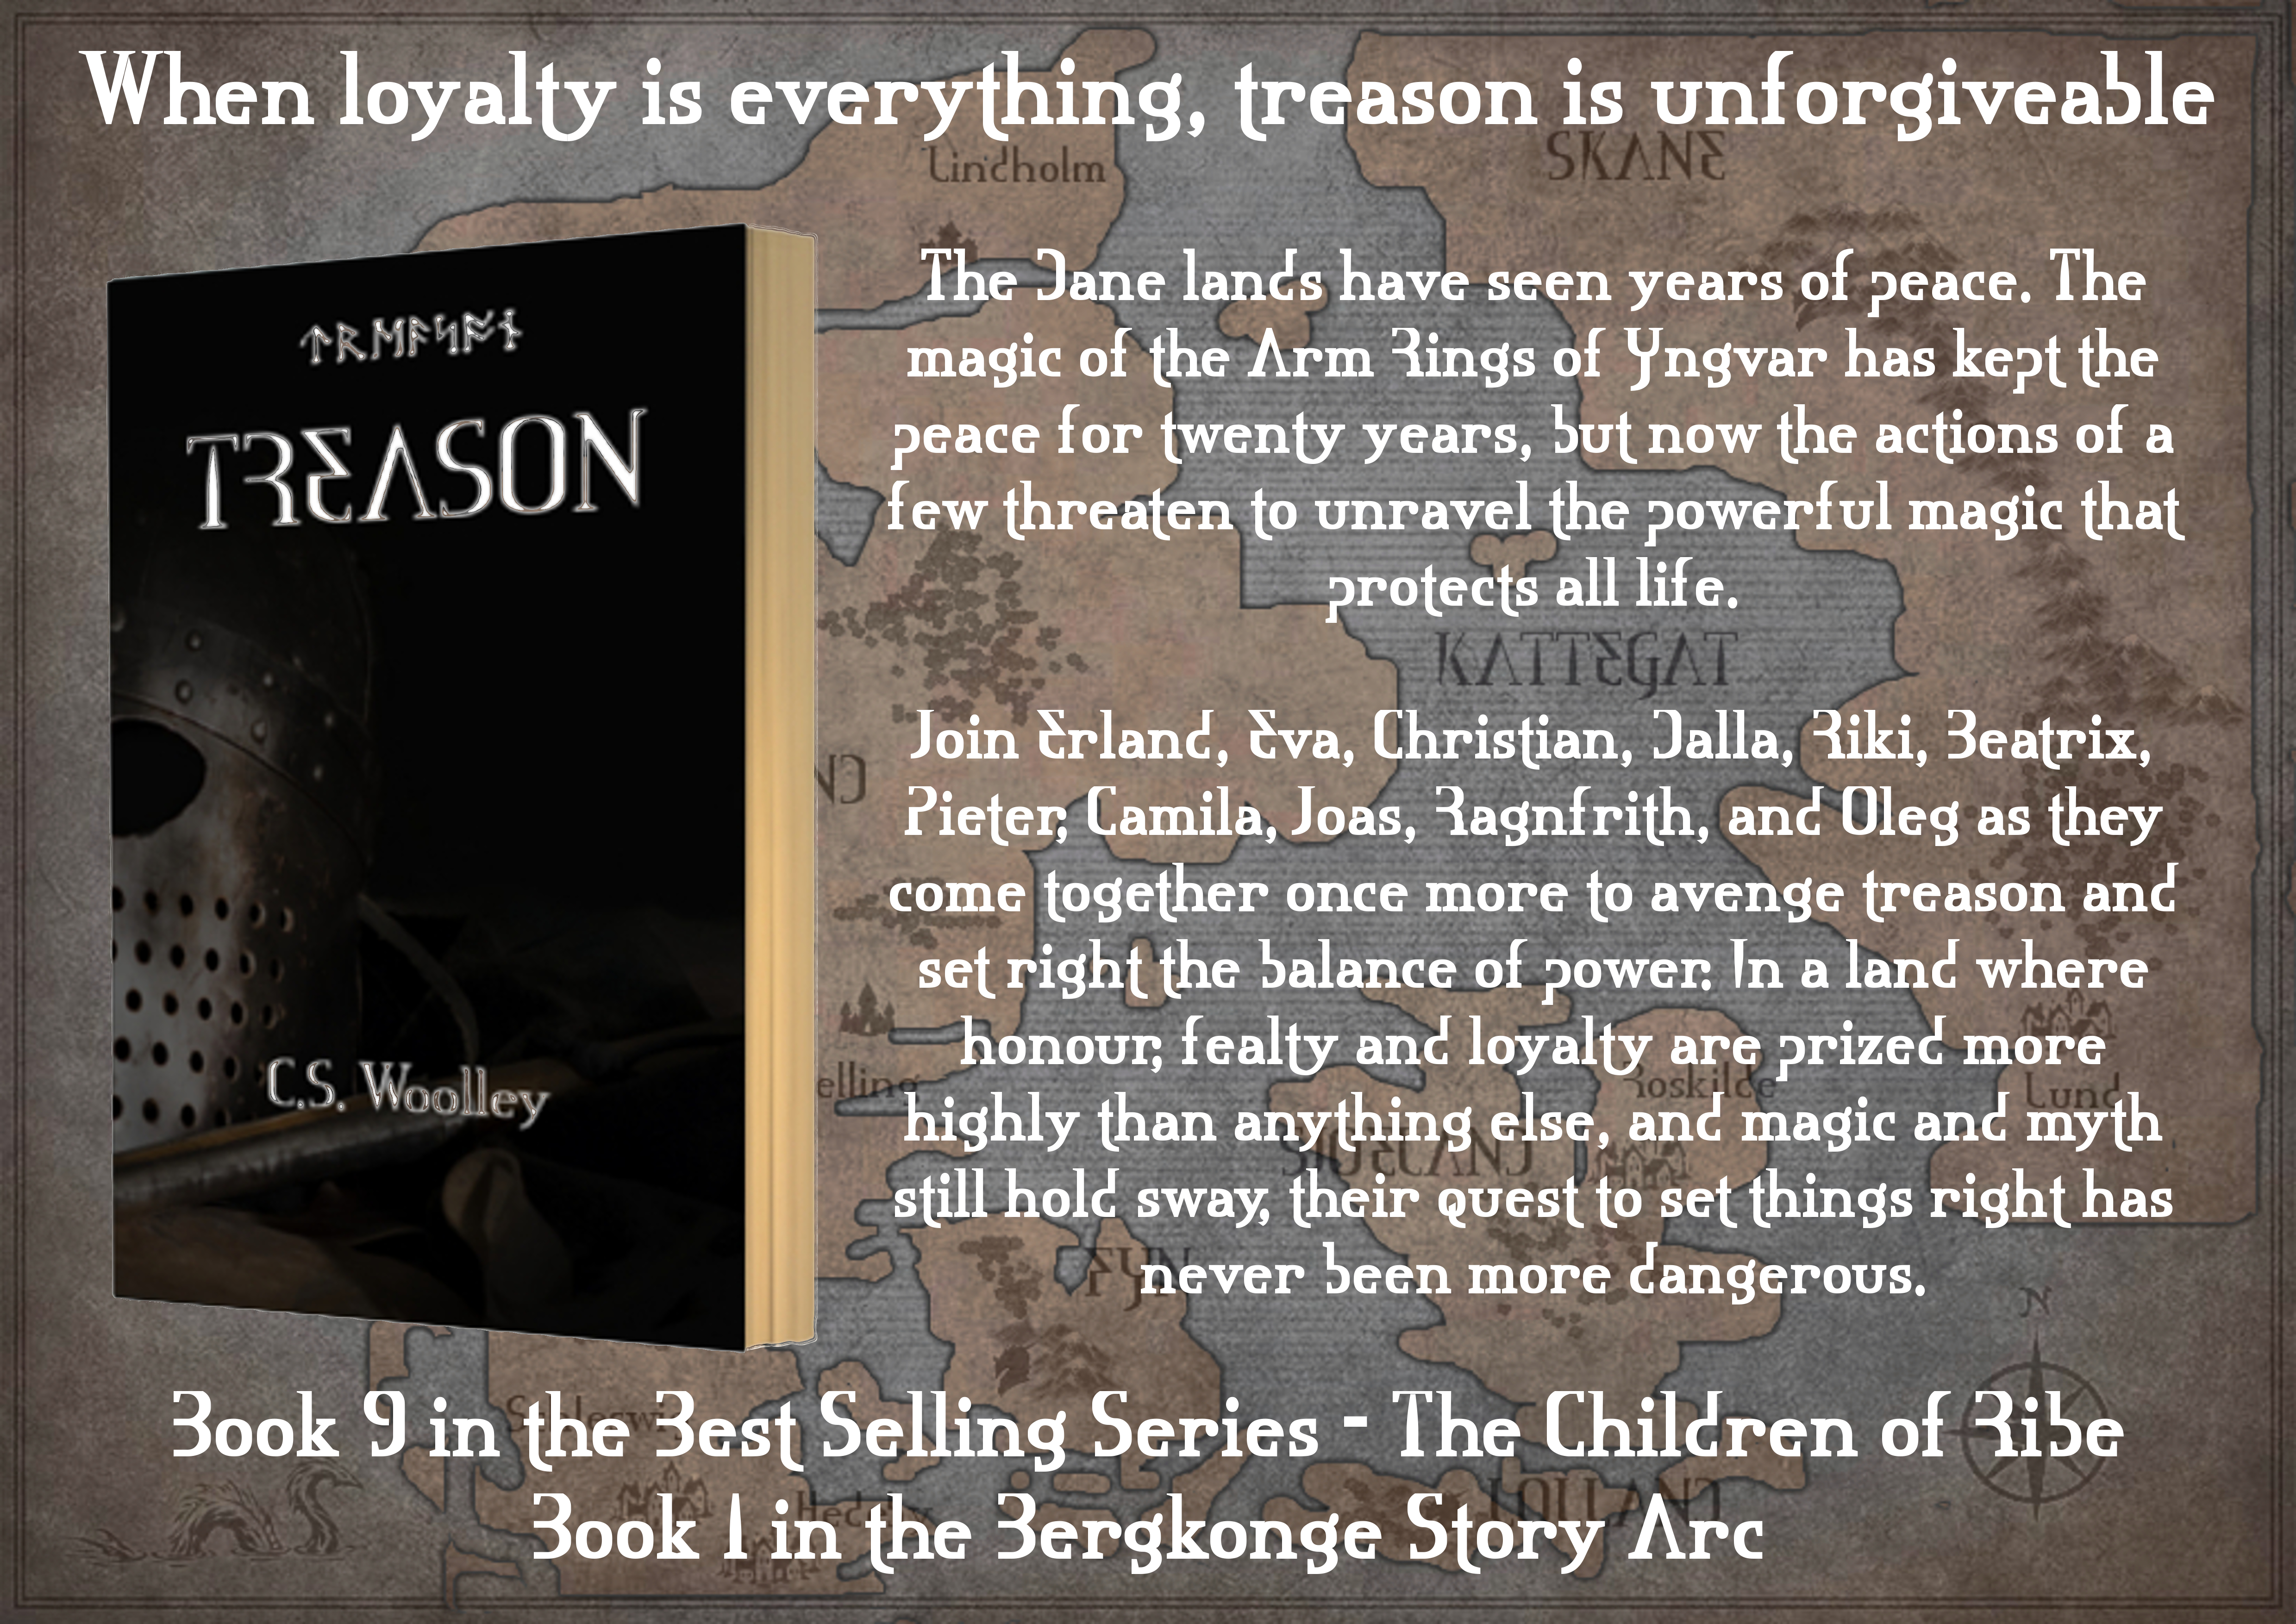 TREASON release – Mightier Than the Sword UK Publications